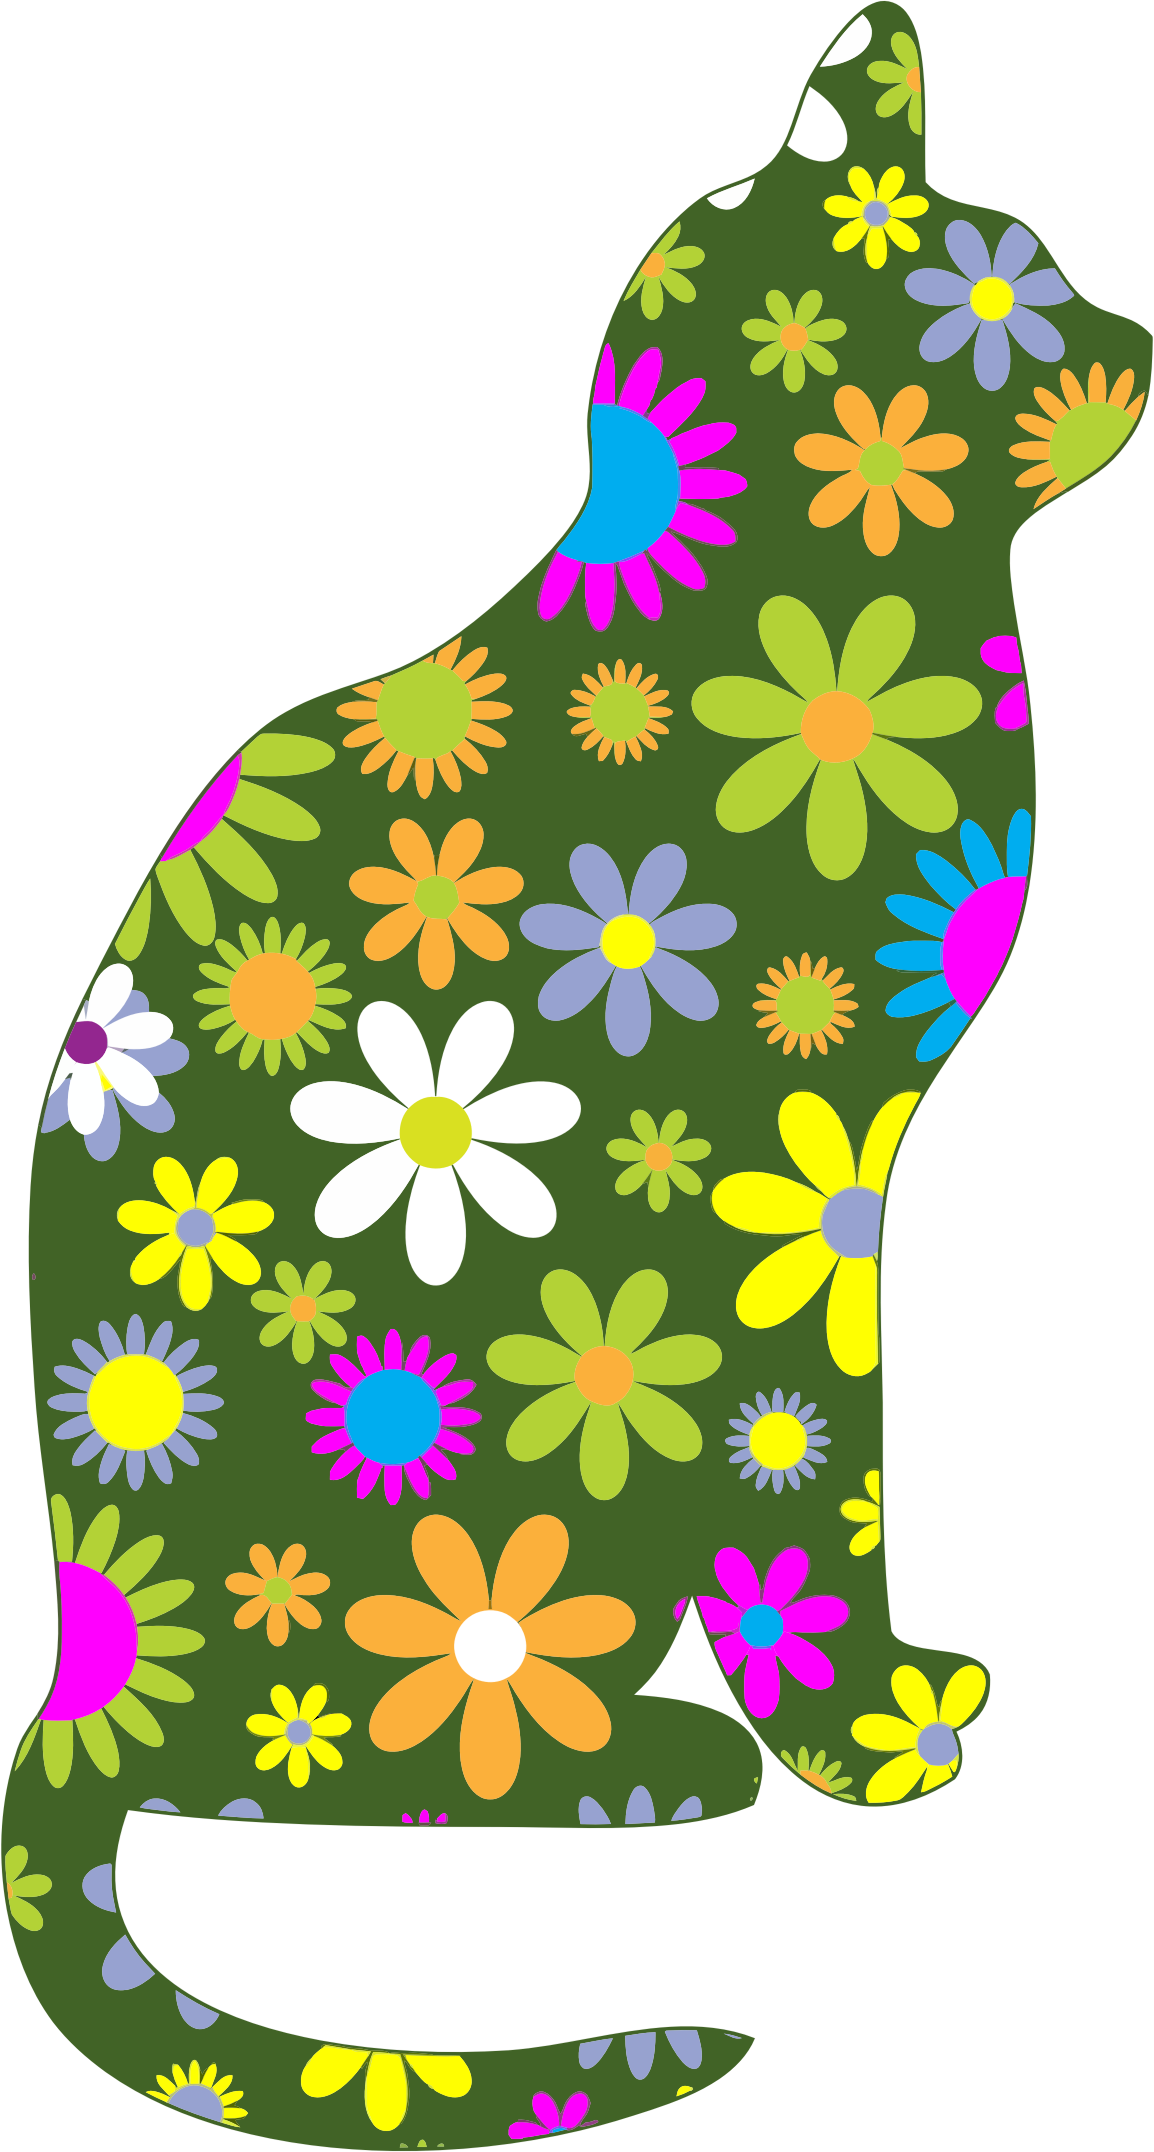 clipart transparent library Appzumbi apps news games. Cat clipart floral.